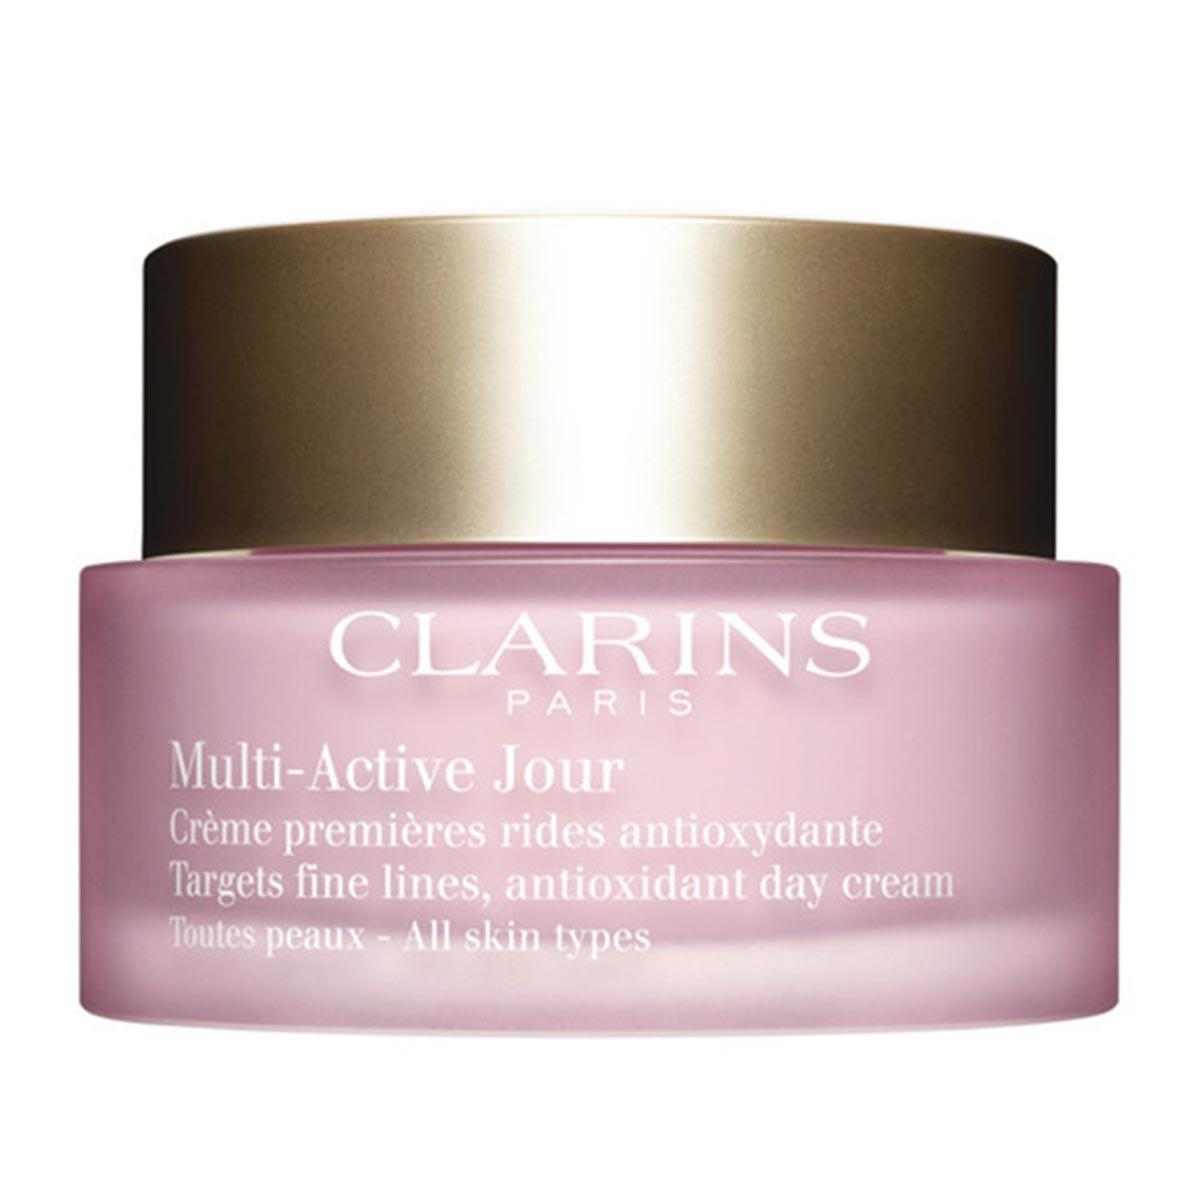 Clarins Multiactive Day Cream Gel All Skin Types 50 ml